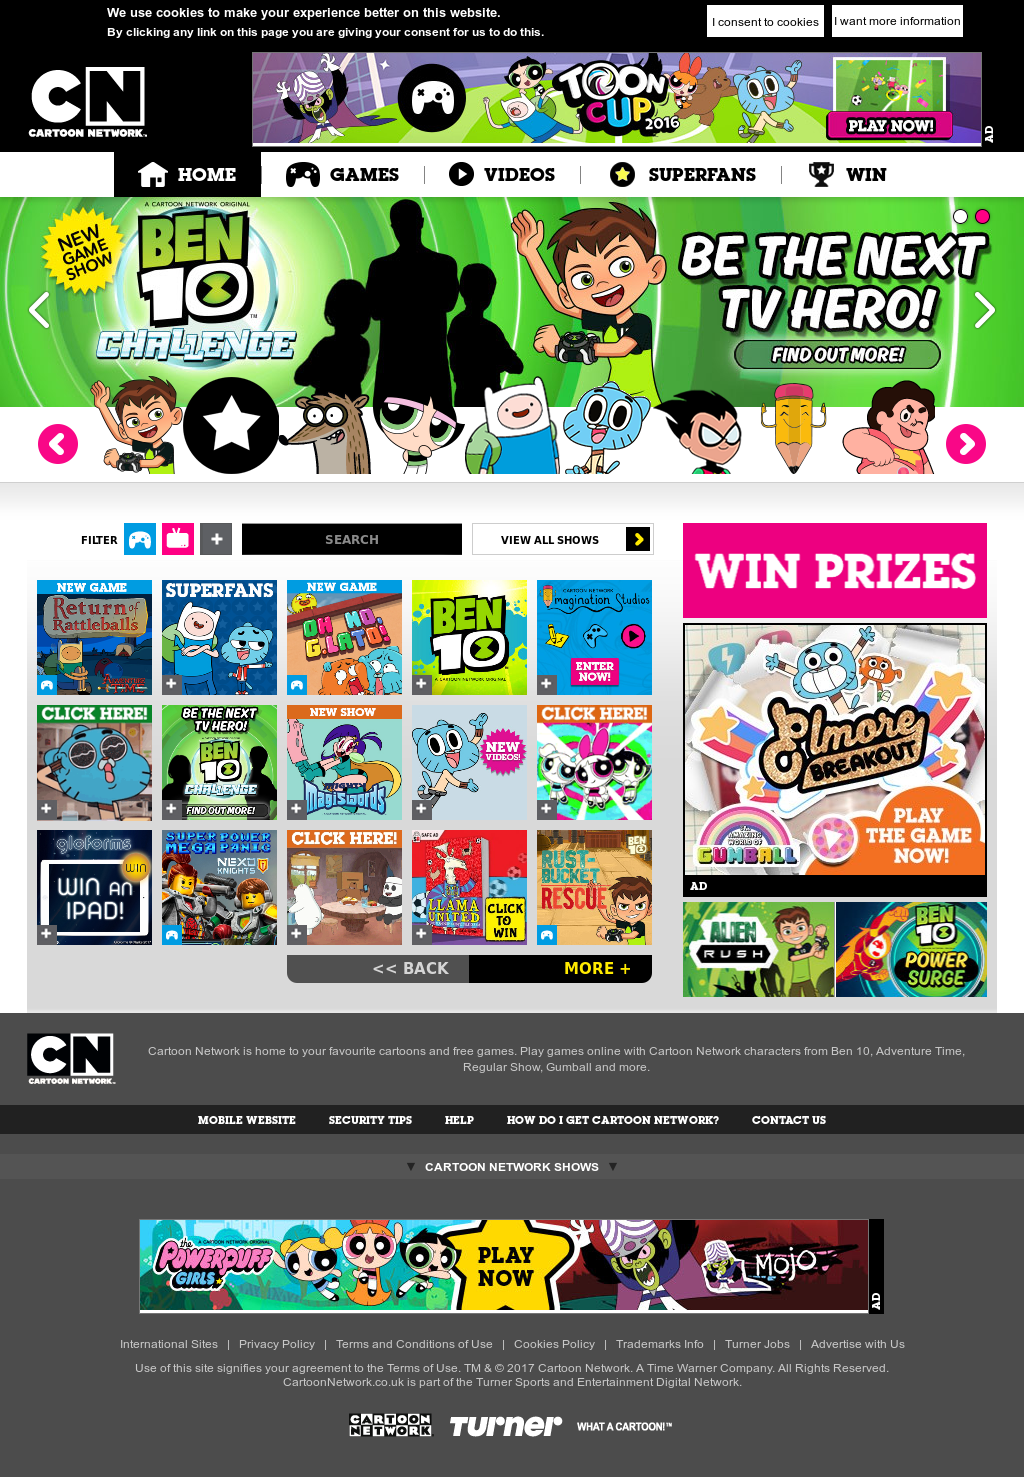 Cartoon Network Uk S Competitors Revenue Number Of Employees Funding Acquisitions News Owler Company Profile